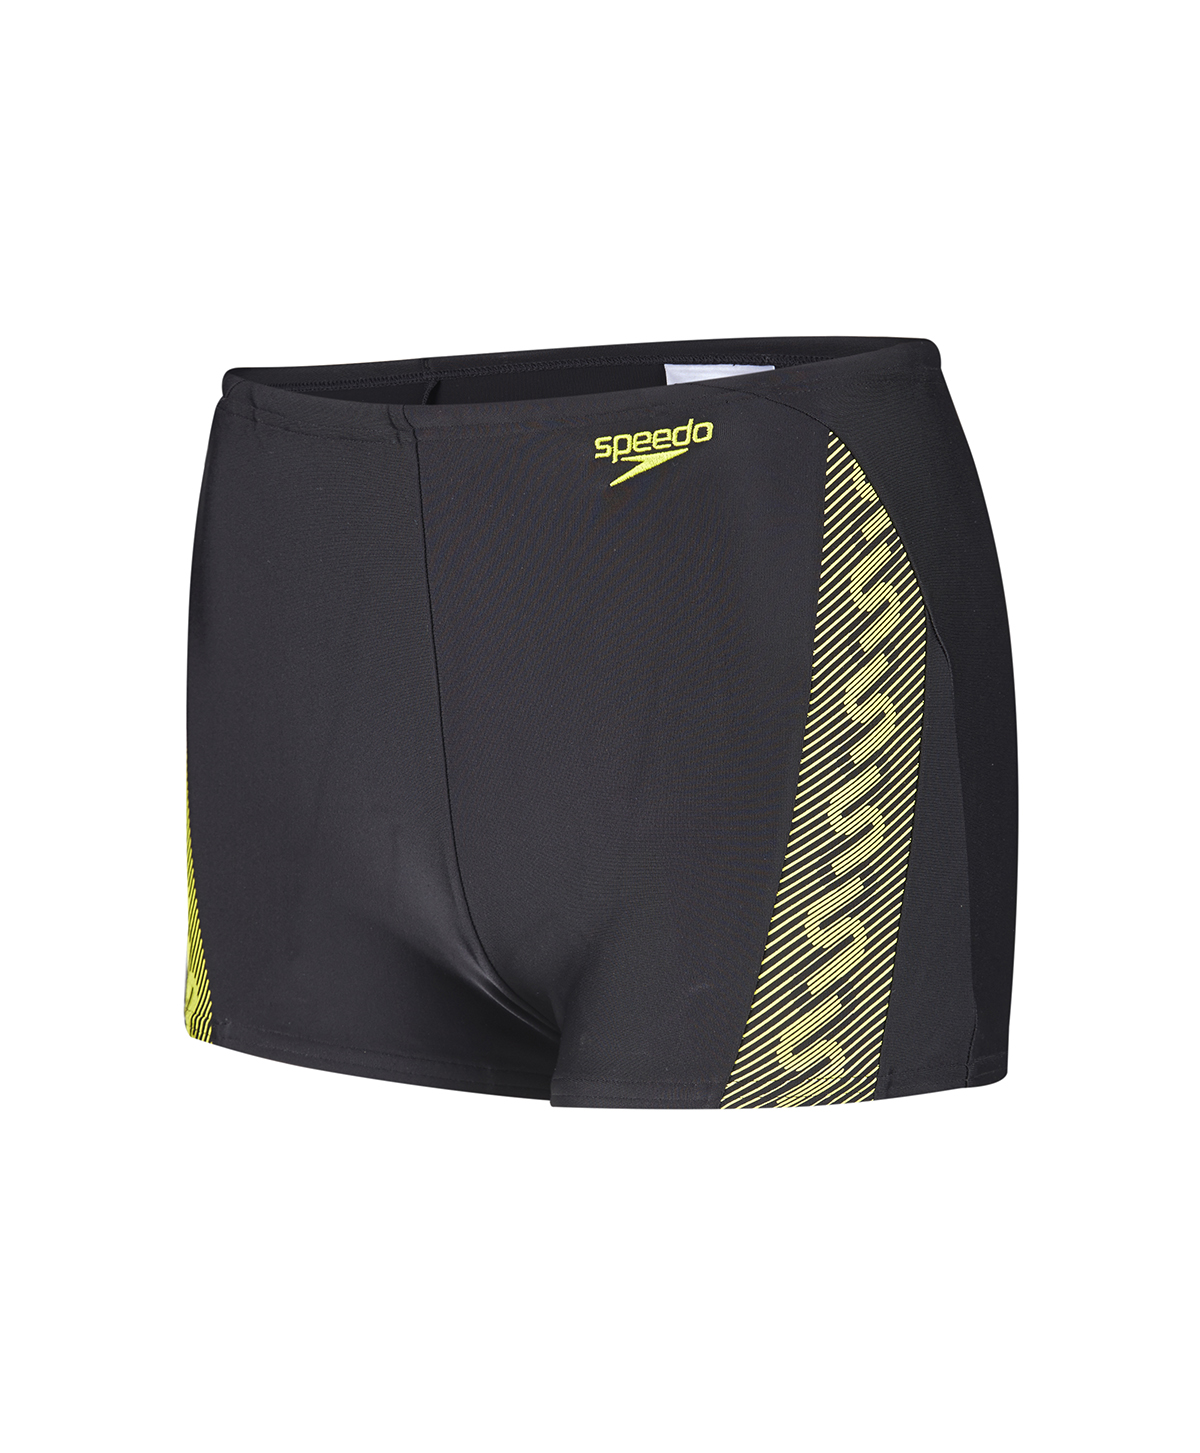 Speedo Boys Allover Aquashort - Black/Gold